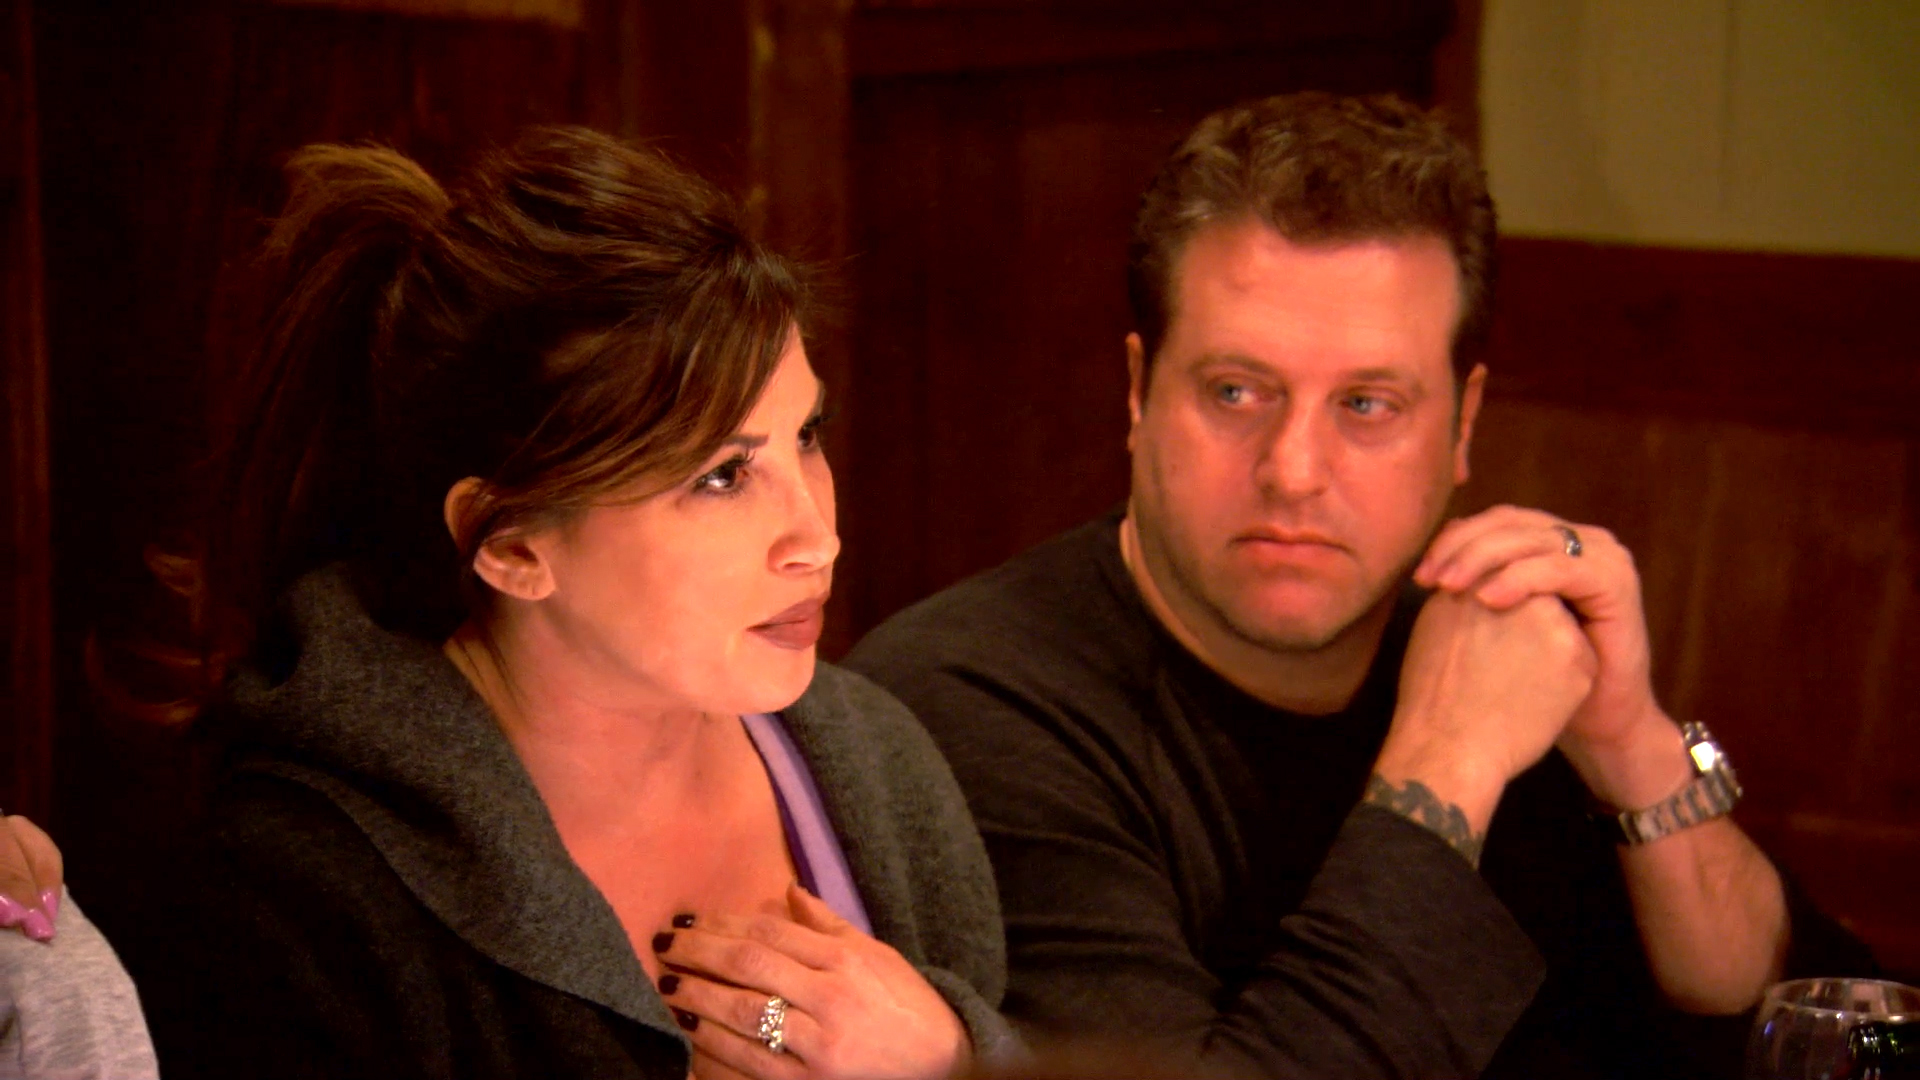 melissa gorga: jacqueline's crazy outbursts are calculated | the